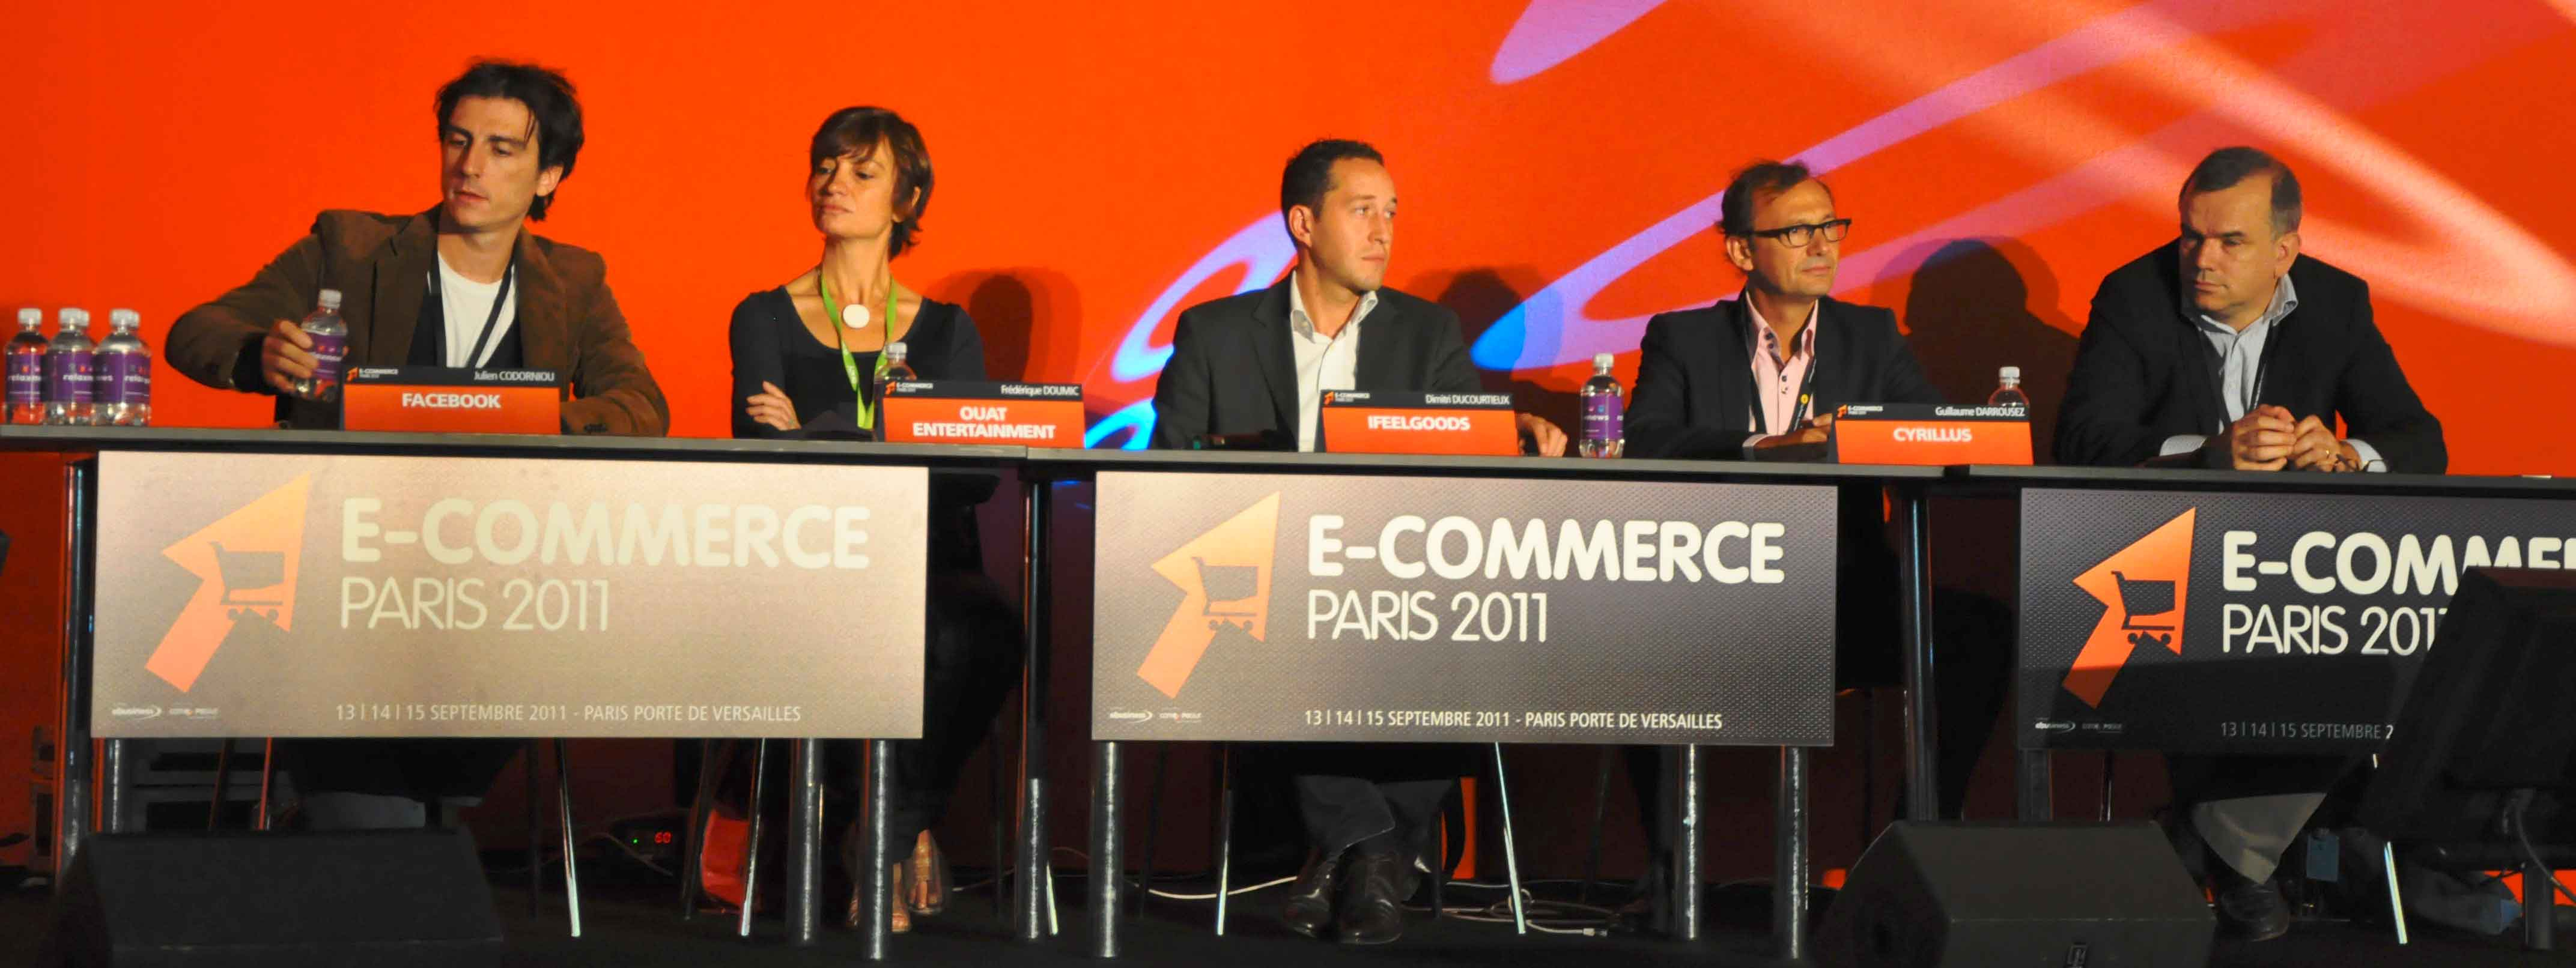 Salon E commerce 2011 npcmedia webchronique stephane peres Facebook : publicité et e commerce